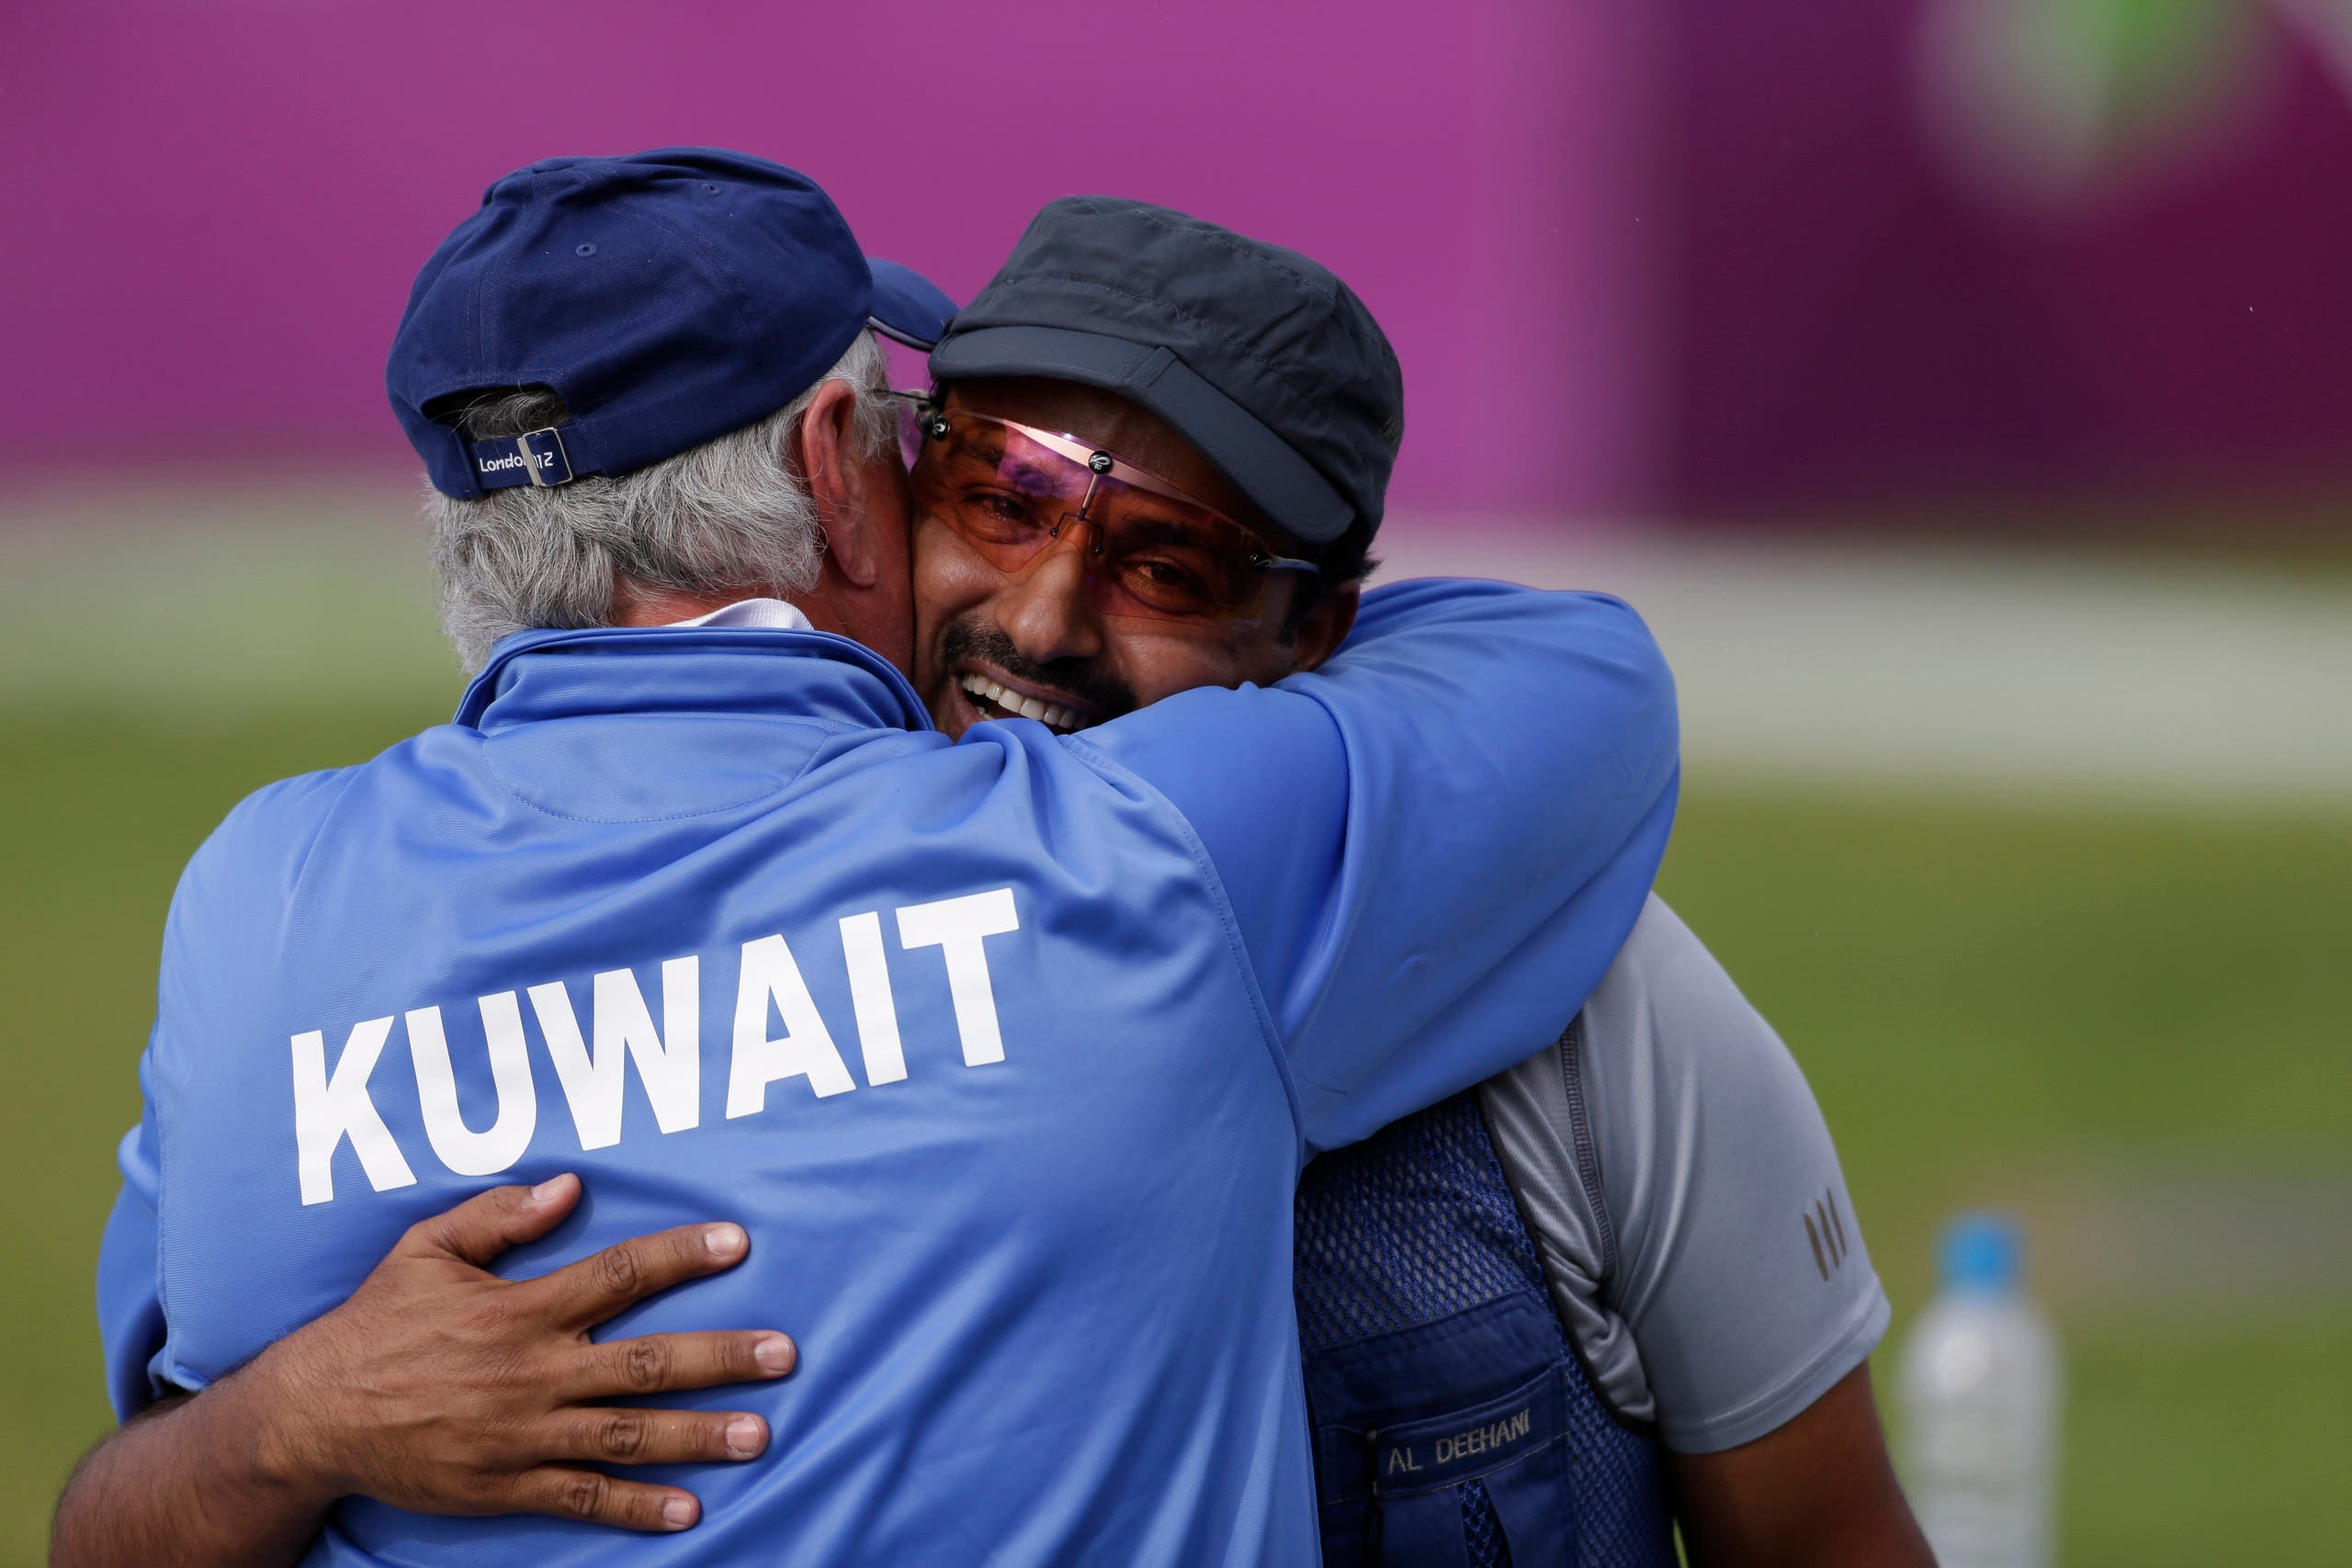 Kuwait's Fehaid Aldeehani is hugged by his coach after winning a shootout to secure the bronze medal, in the men's trap final, at the 2012 Summer Olympics, Monday, Aug. 6, 2012, in London. (AP)